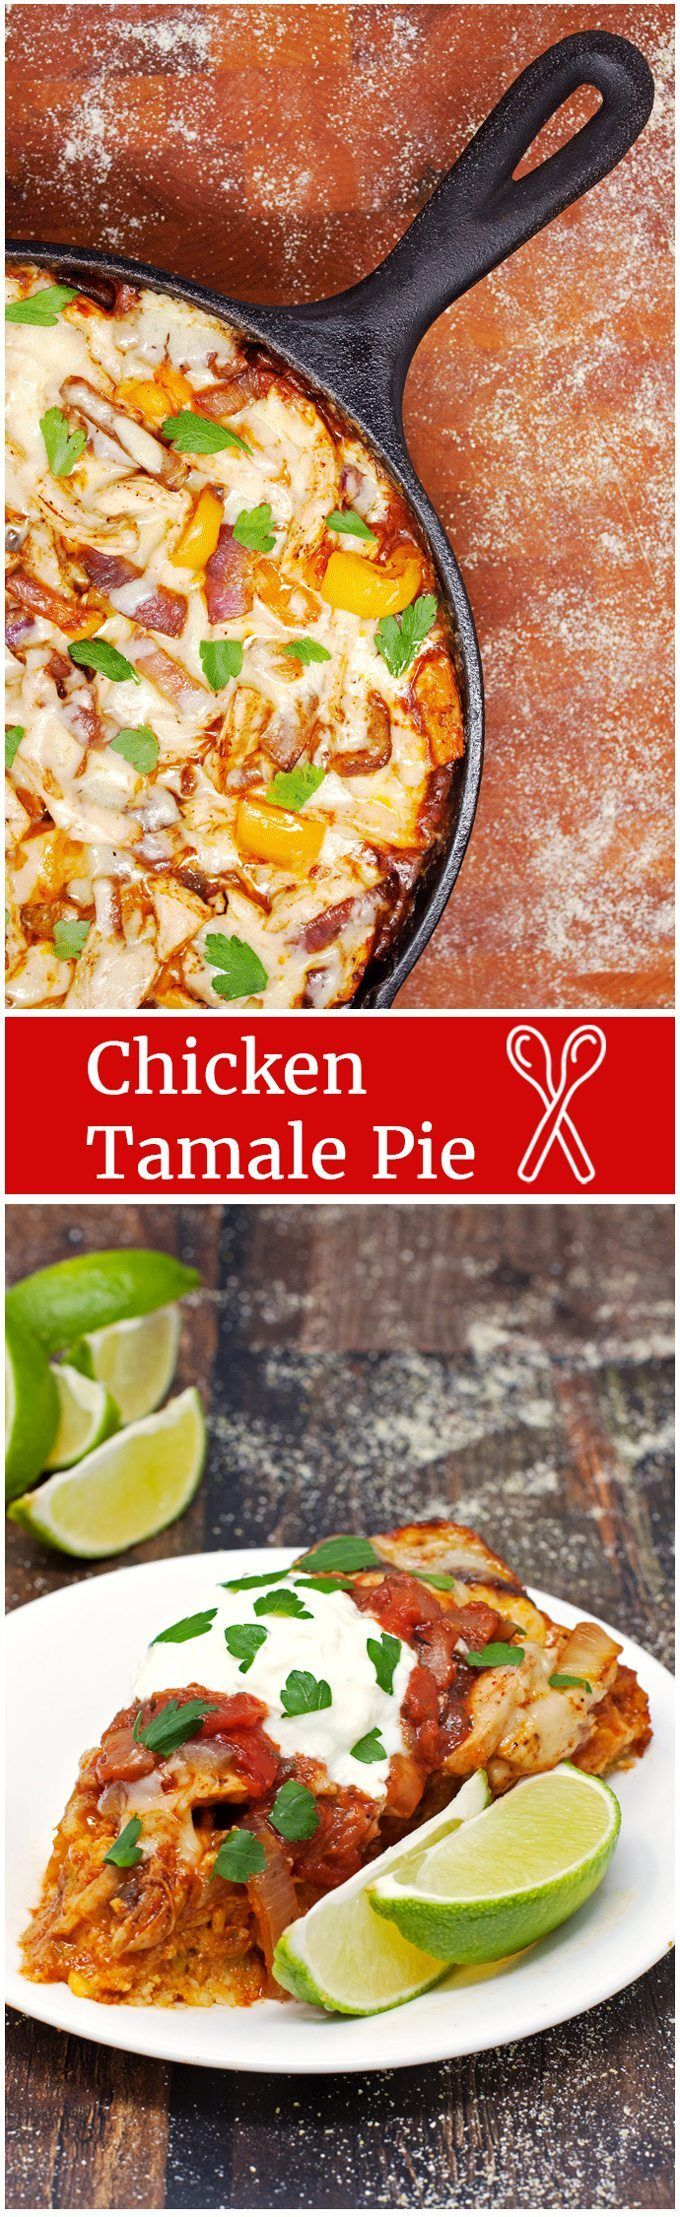 Chicken Tamale Pie: One-skillet, easy chicken tamale pie recipe with layers of cornbread, enchilada sauce, chicken and cheese, baked until melty and topped with your favorite taco fixings! - 2teaspoons.com